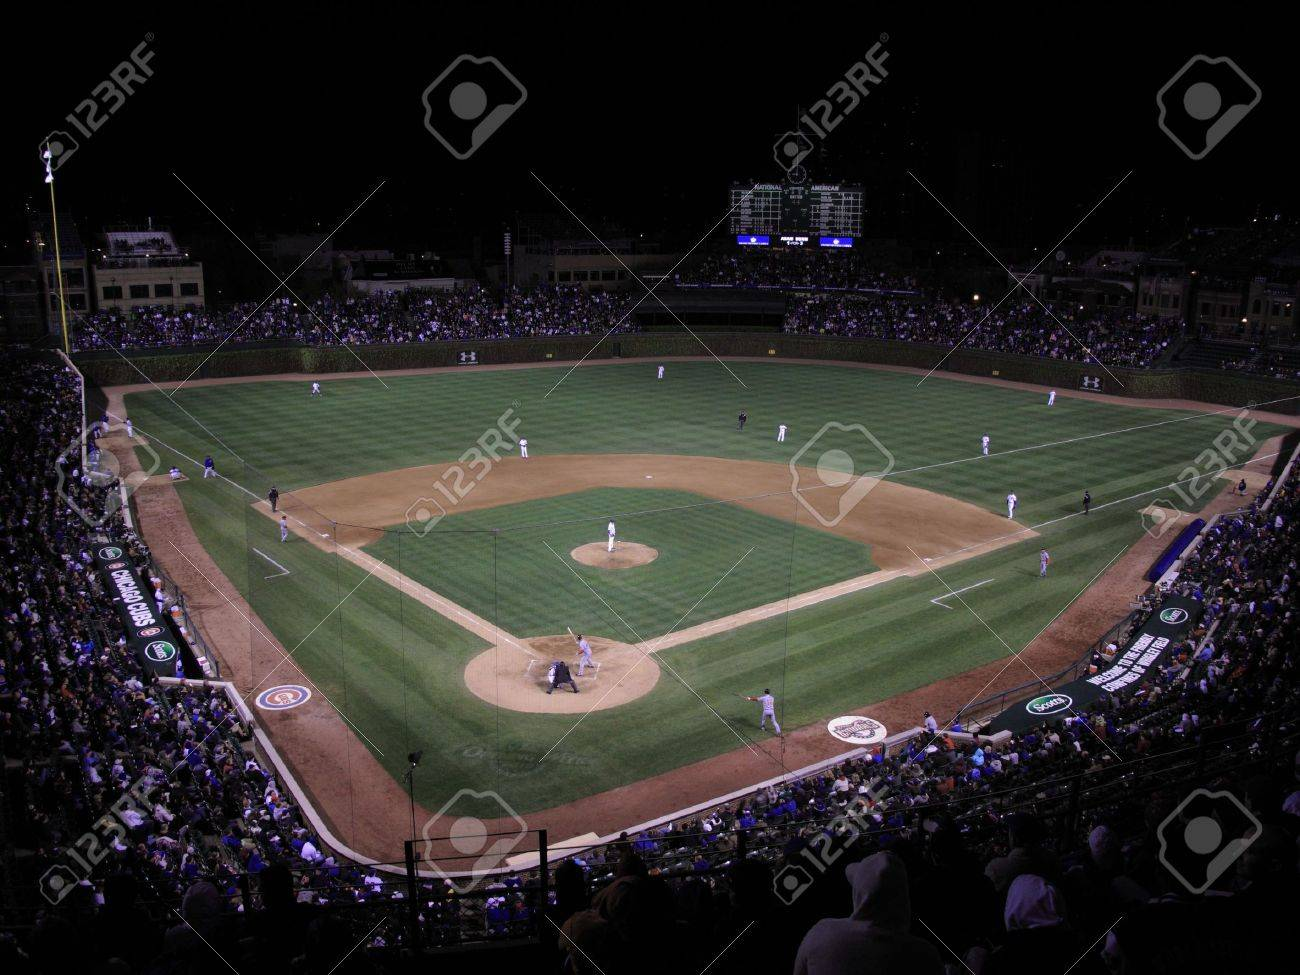 Chicago, Illinois - April 26, 2010: Rare Wrigley Field night game pitting the Chicago Cubs against the Washington Nationals Stock Photo - 7124350